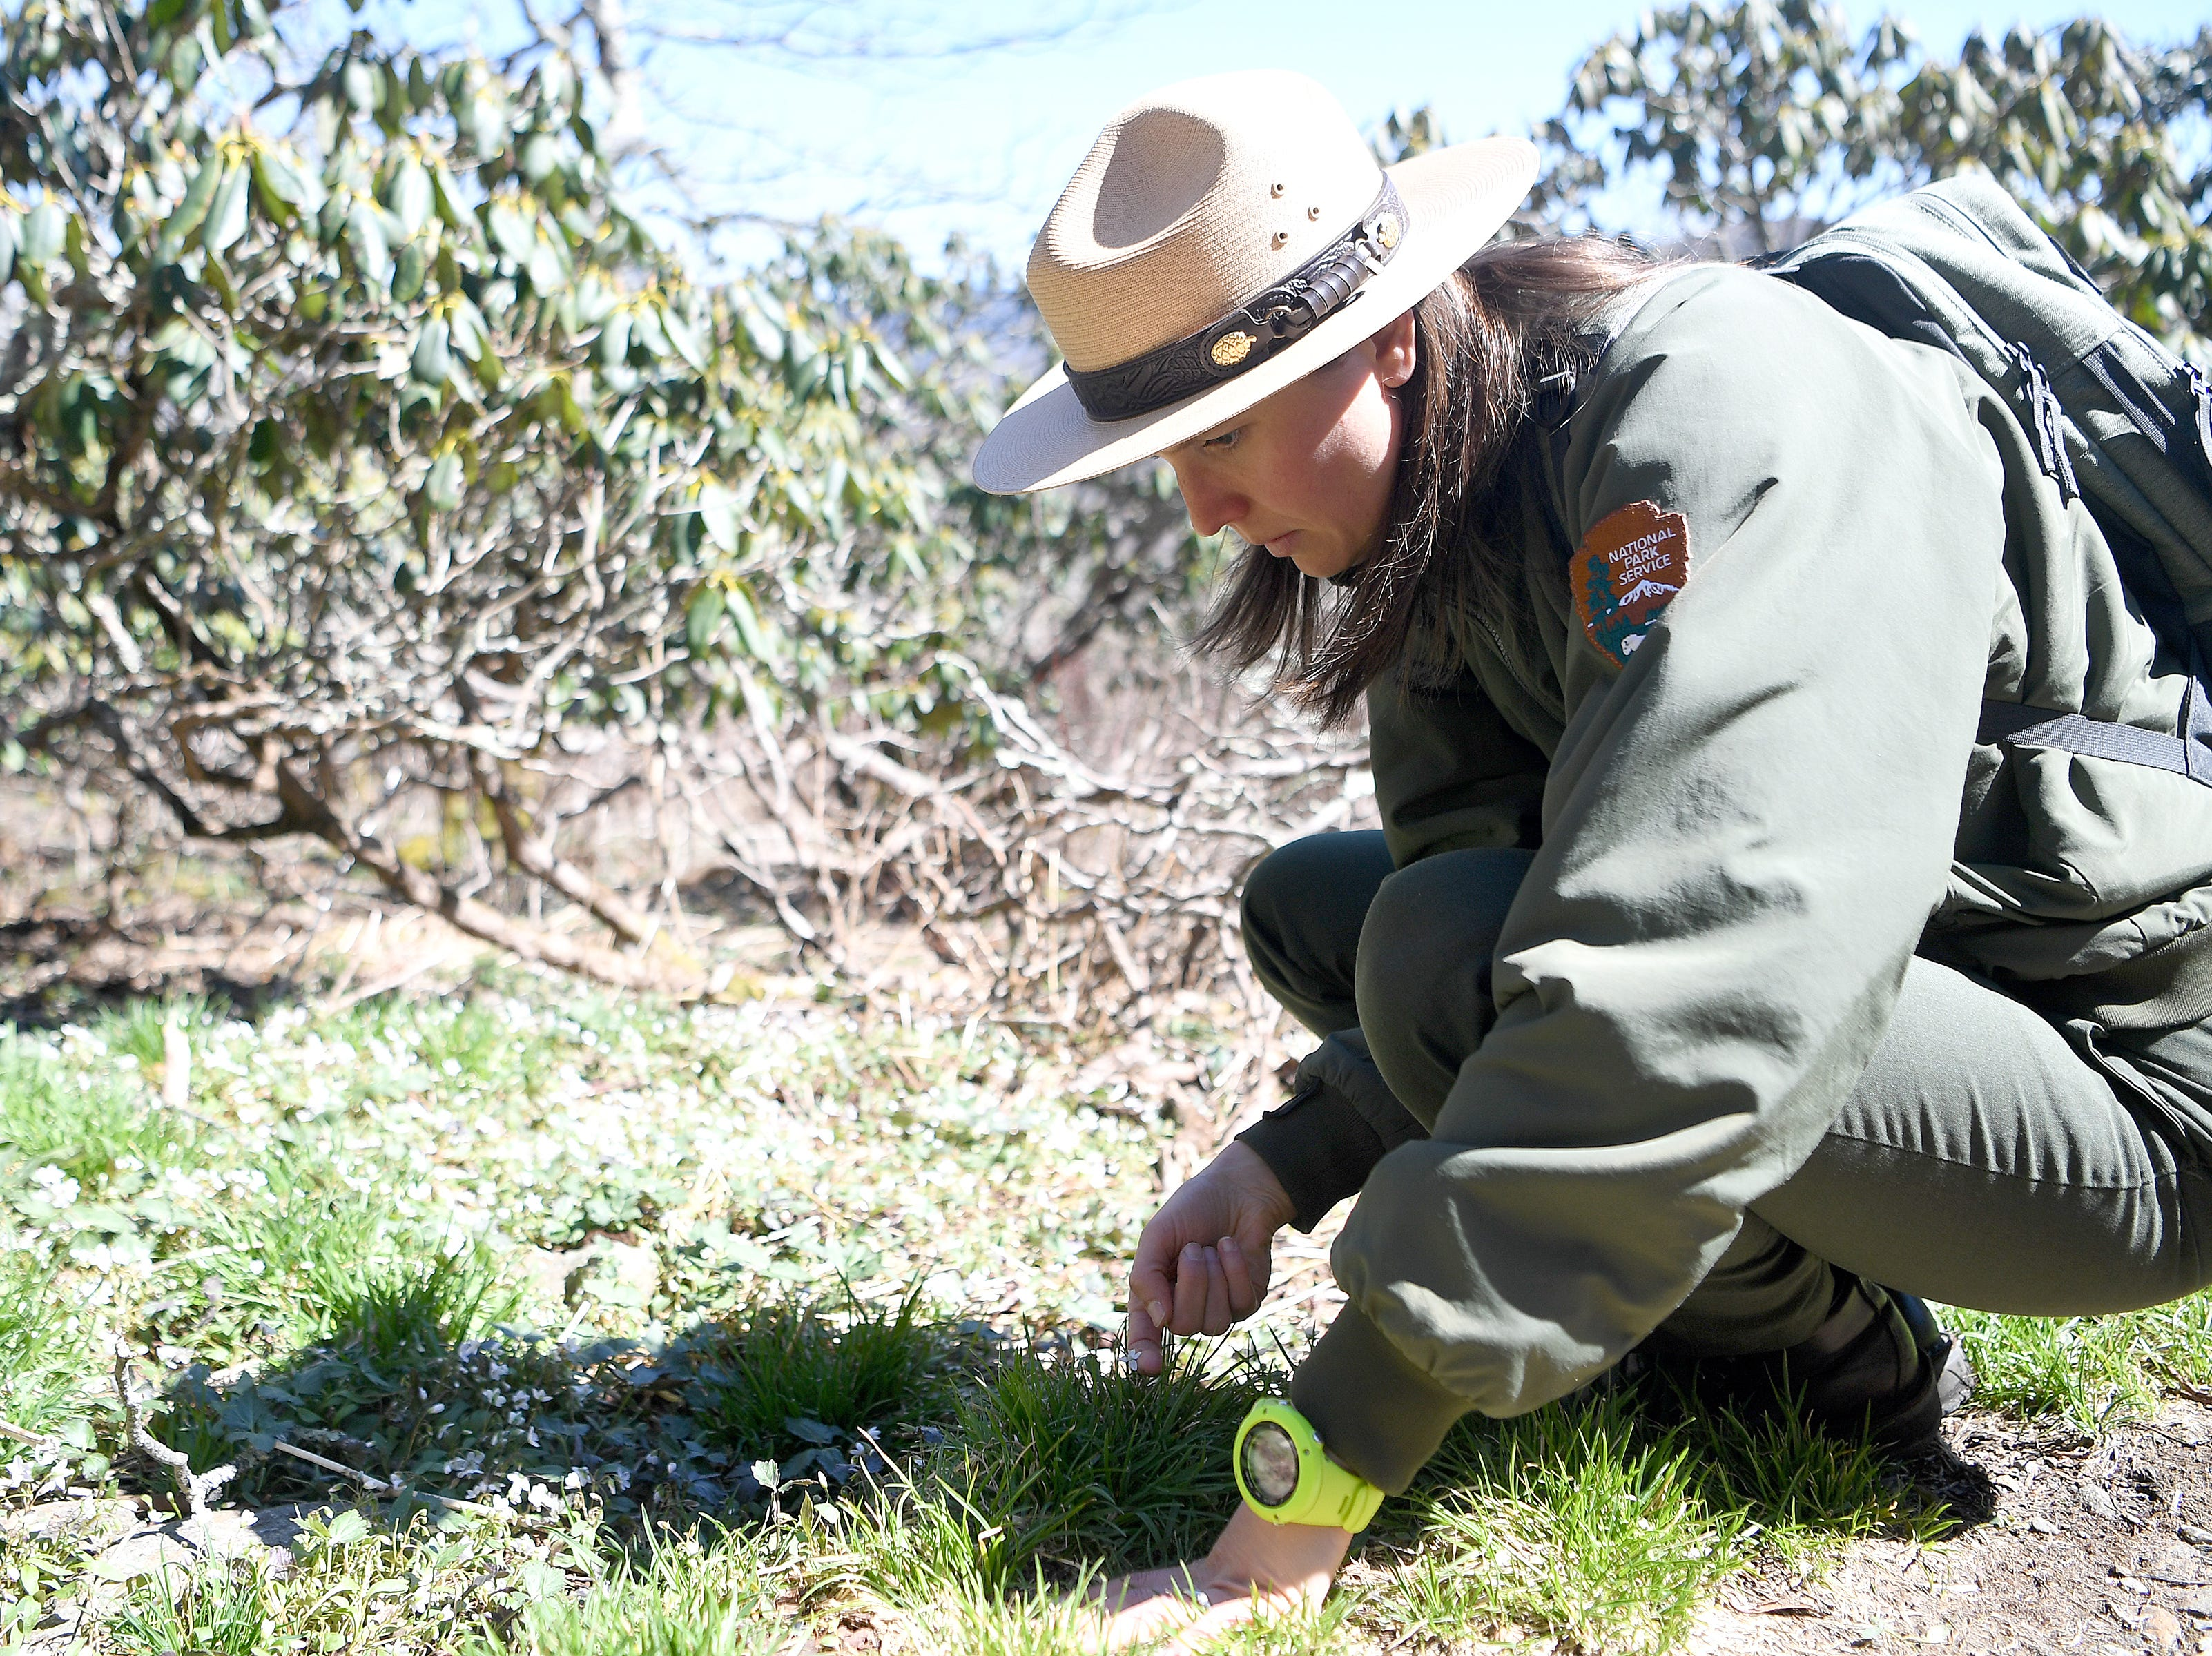 Blue Ridge Parkway spokesperson Caitlin Worth identifies wildflowers along the Craggy Pinnacle Trail on the Blue Ridge Parkway after explaining the Craggy Rovers program on April 22, 2019. The program is run by volunteers that help answer questions for visitors and keep them on the trails to preserve the fragile and rare vegetation that grows in the area.